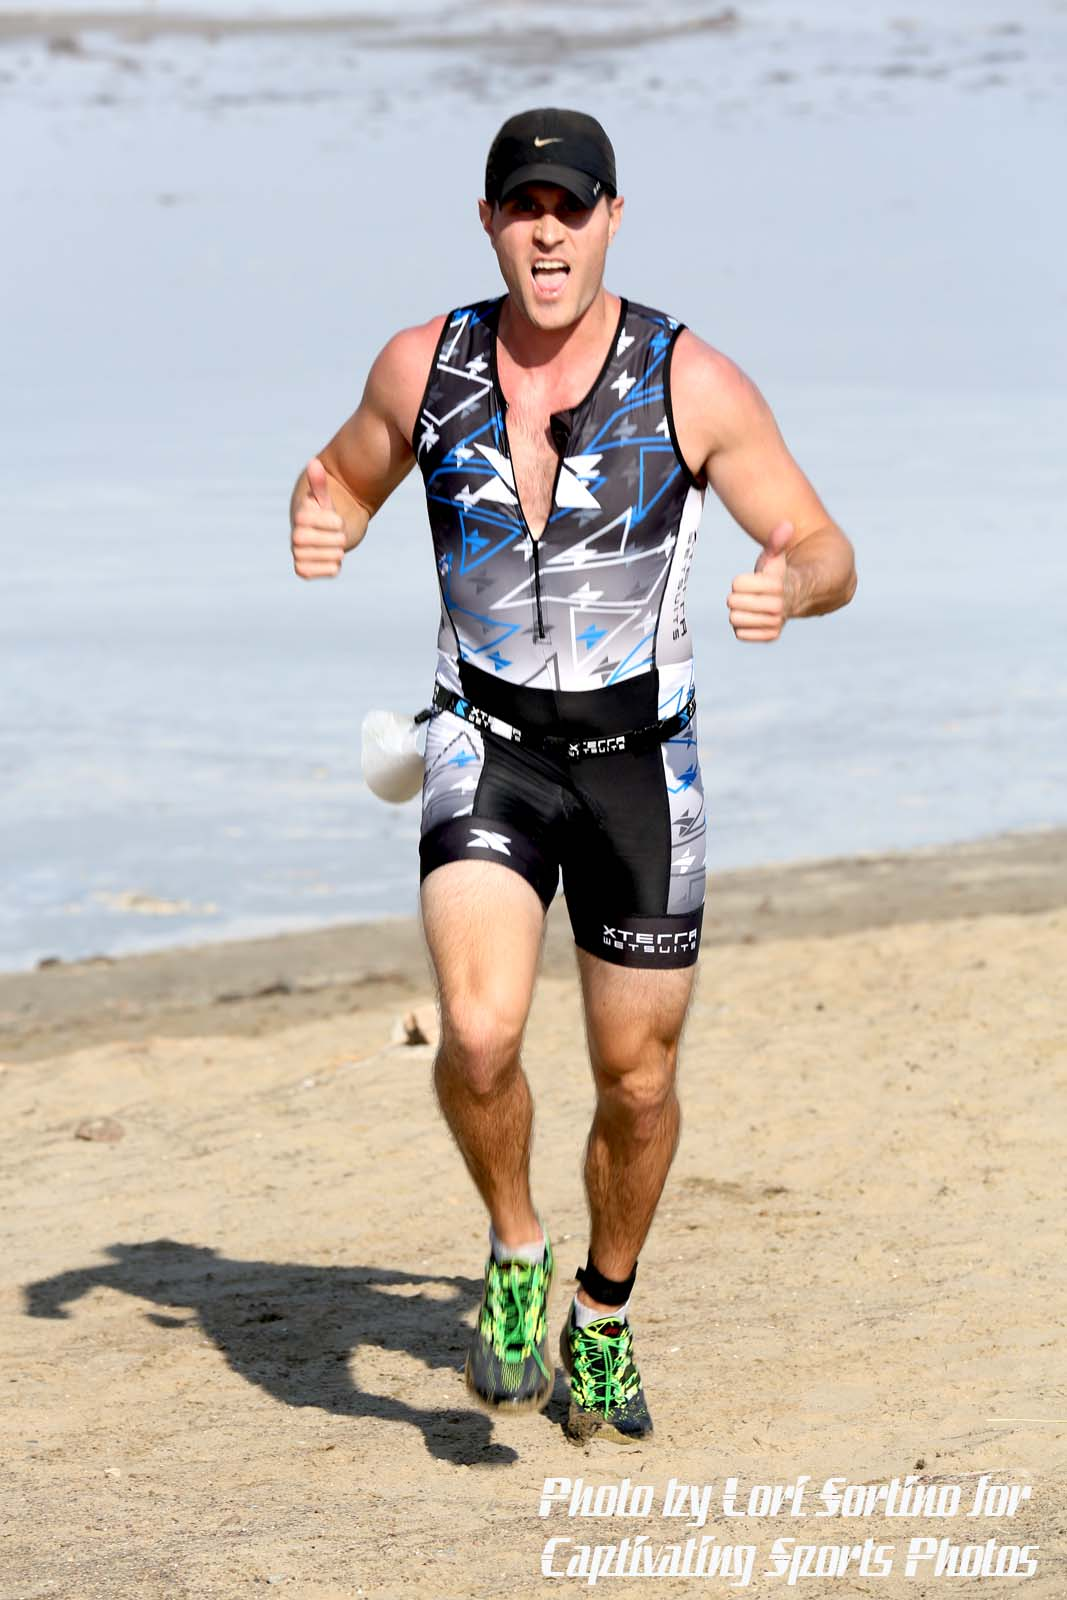 male triathlete running on beach thumbs up celebrating